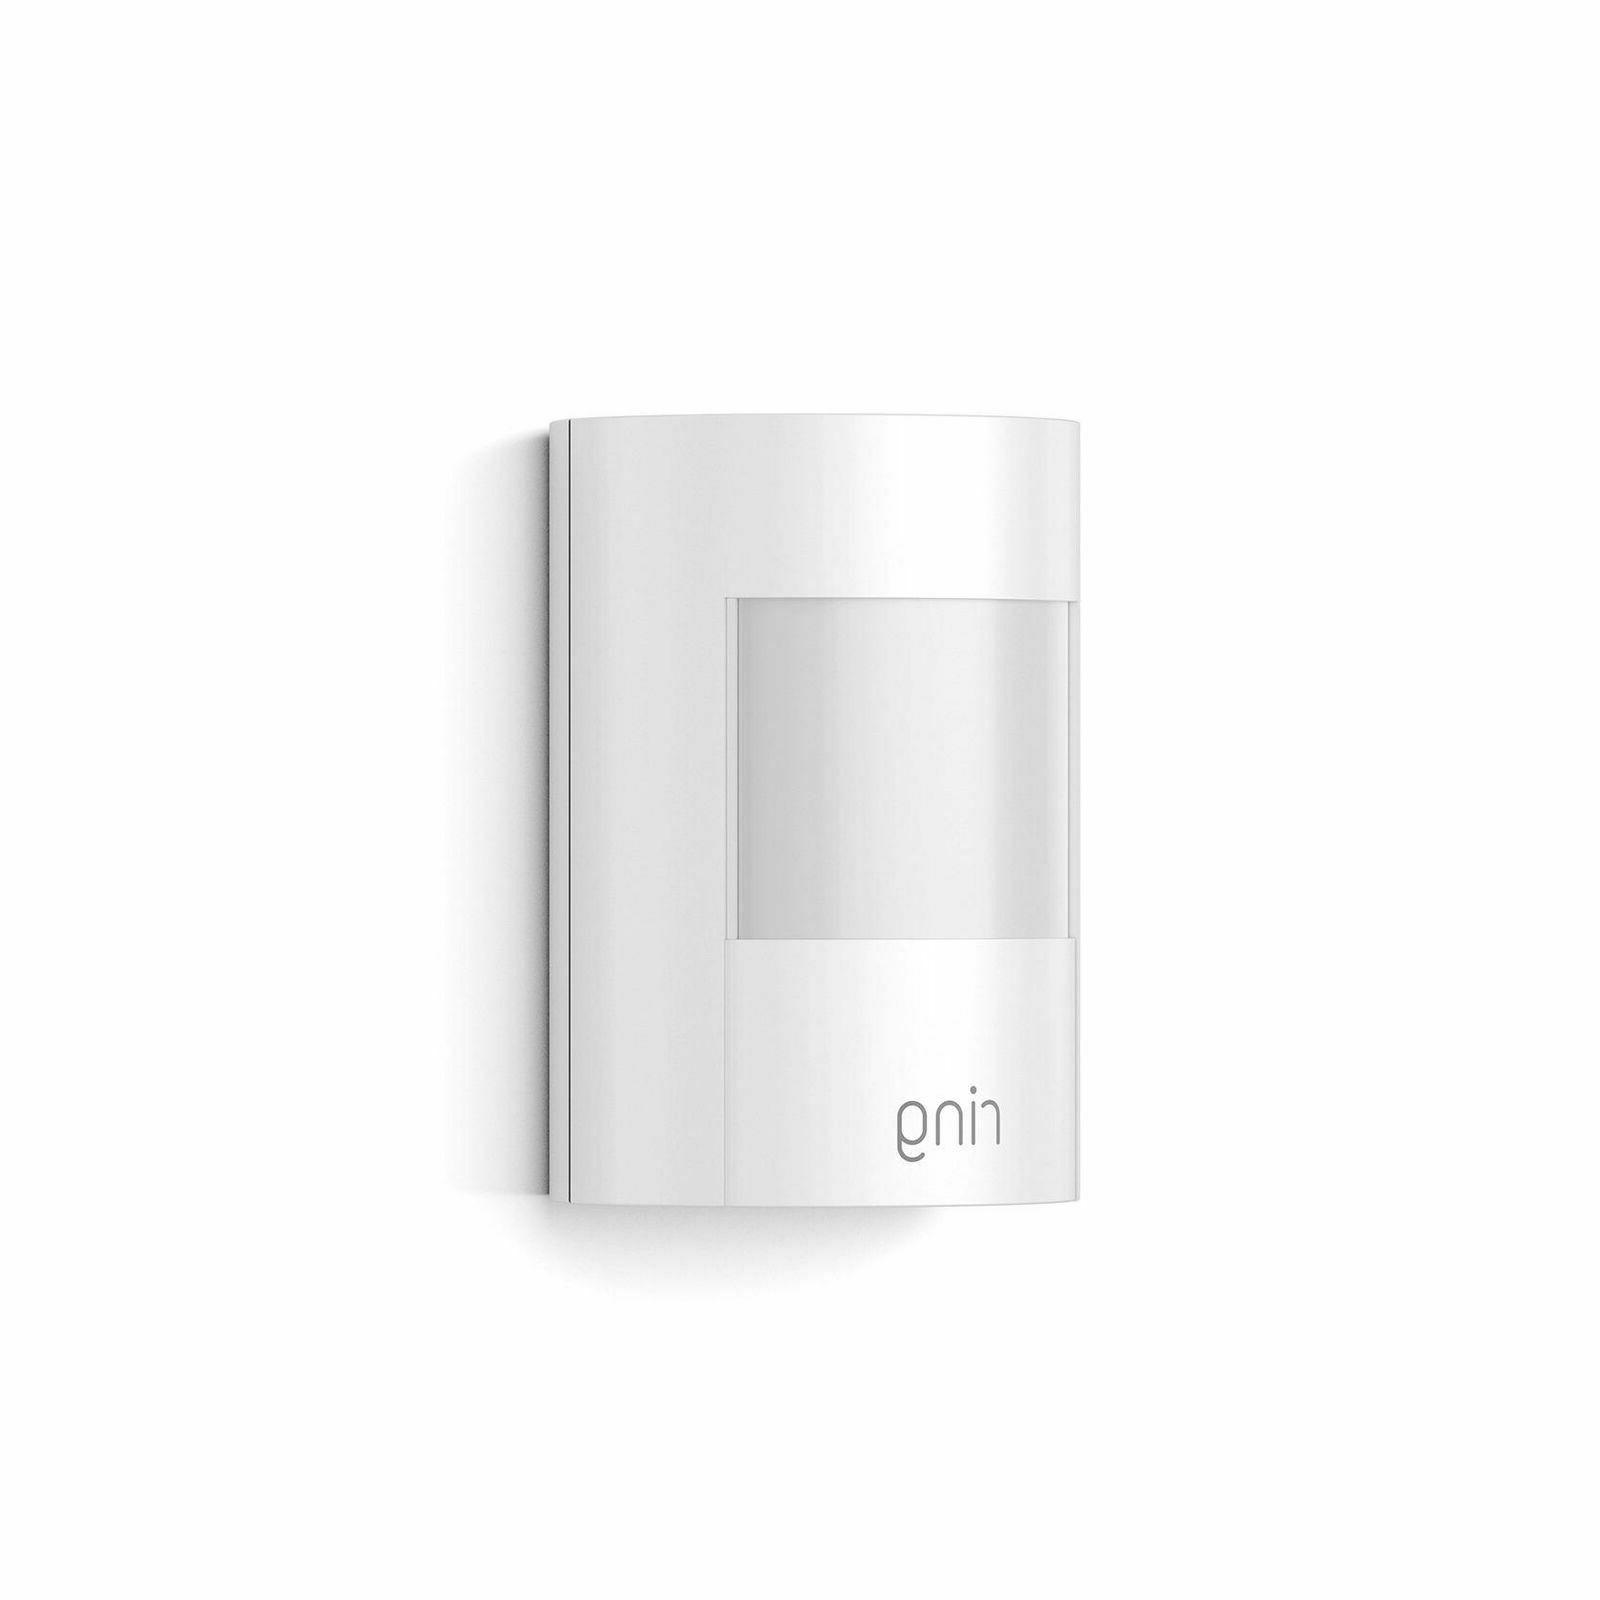 ring alarm motion detector z wave plus